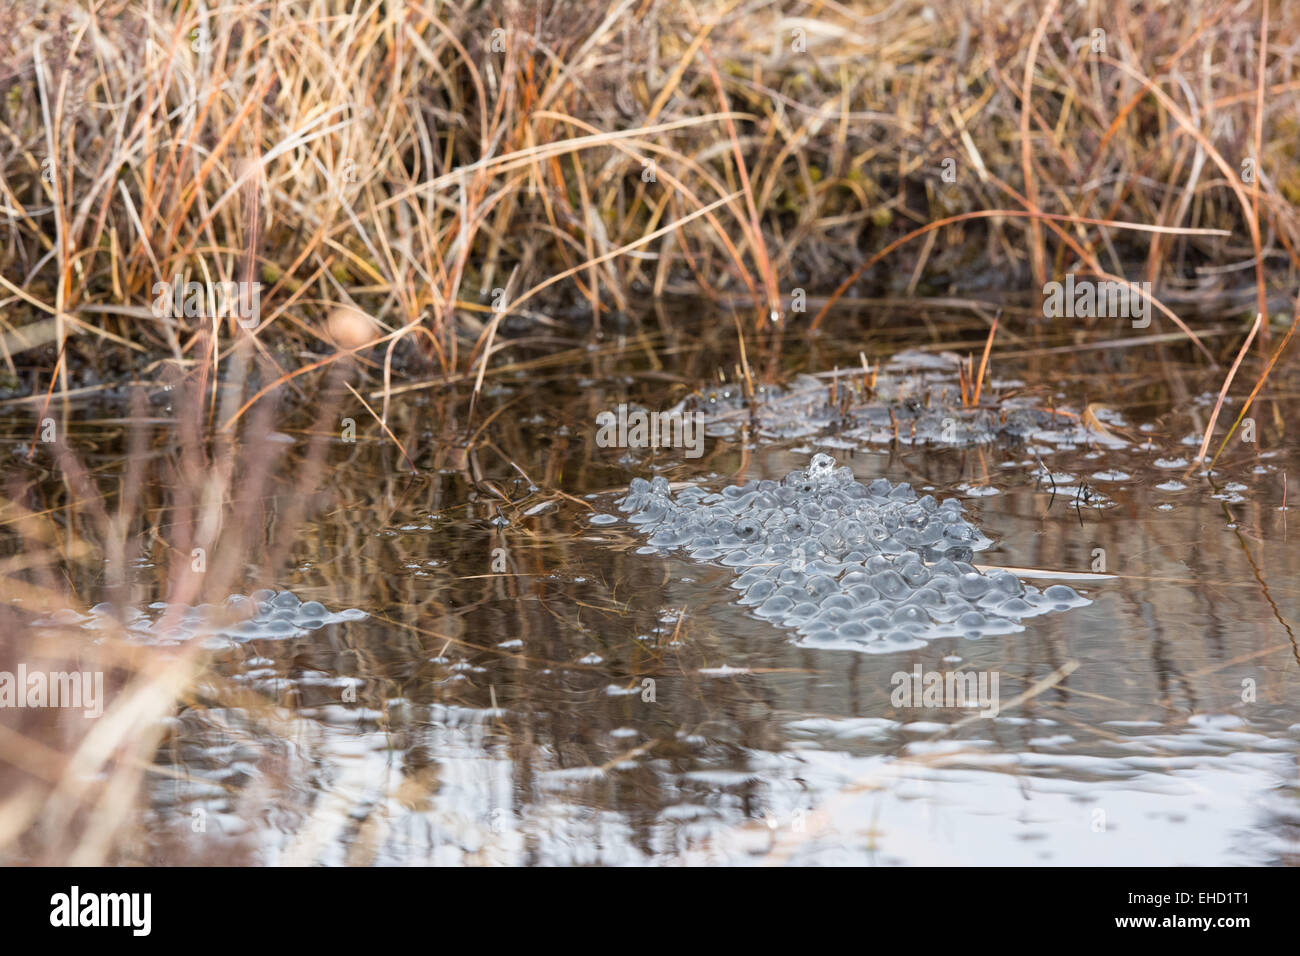 Frog Spawn in a Marshy Pond - Stock Image